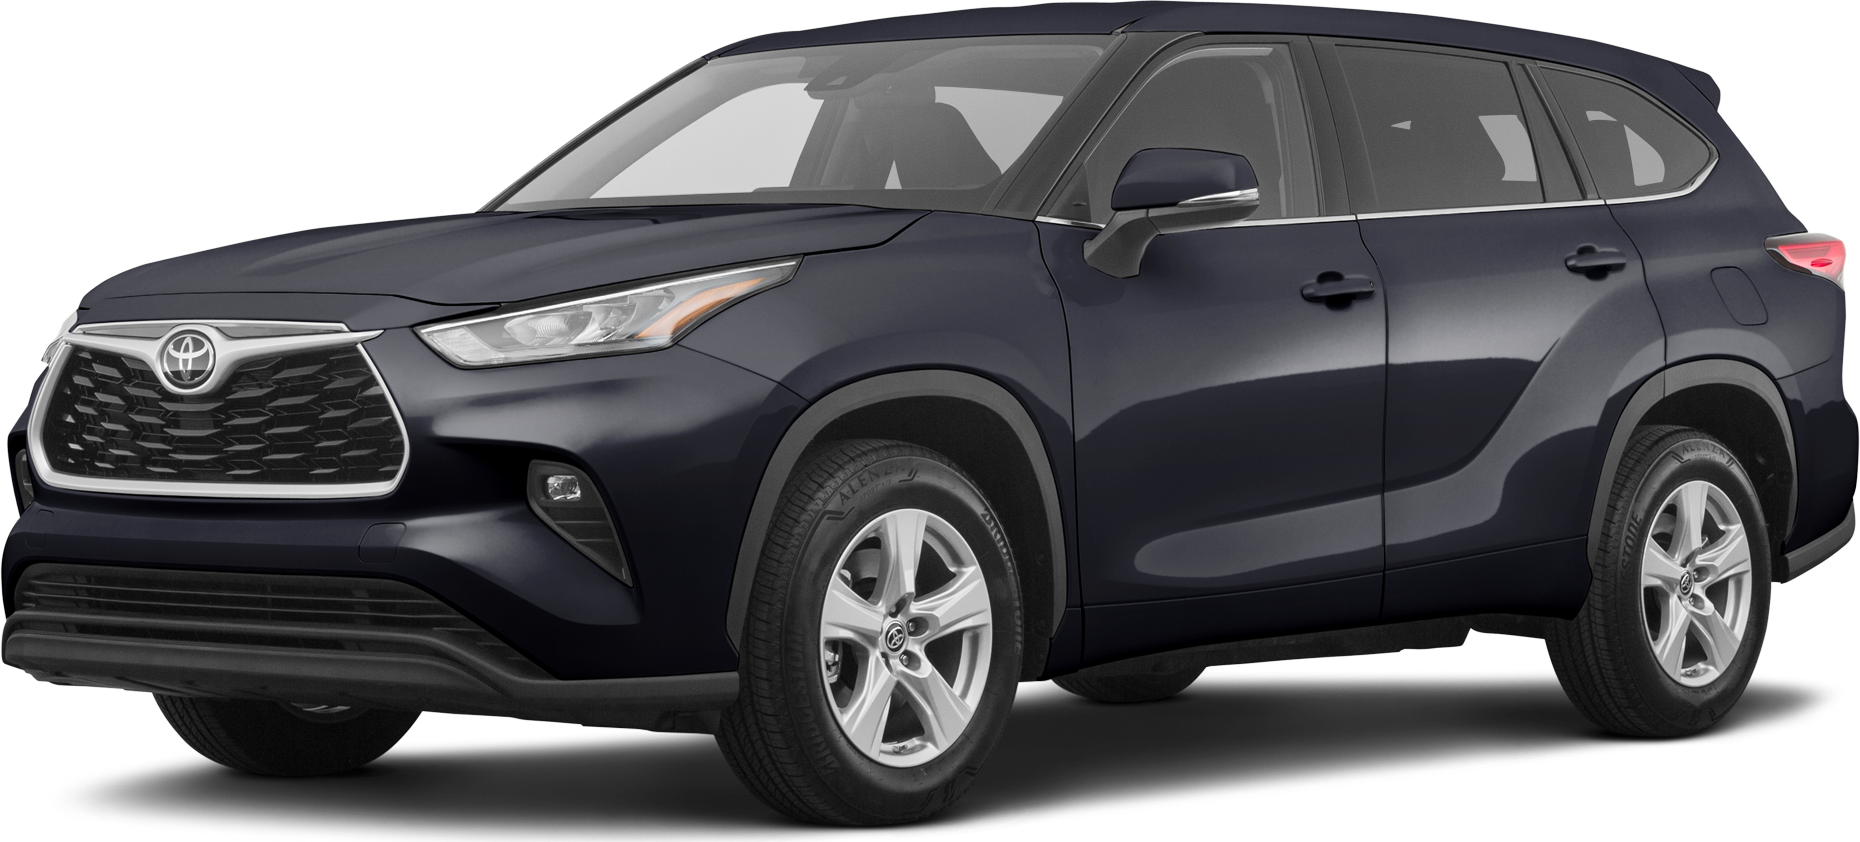 2021 Toyota Corolla Prices Reviews Pictures Kelley Blue Book